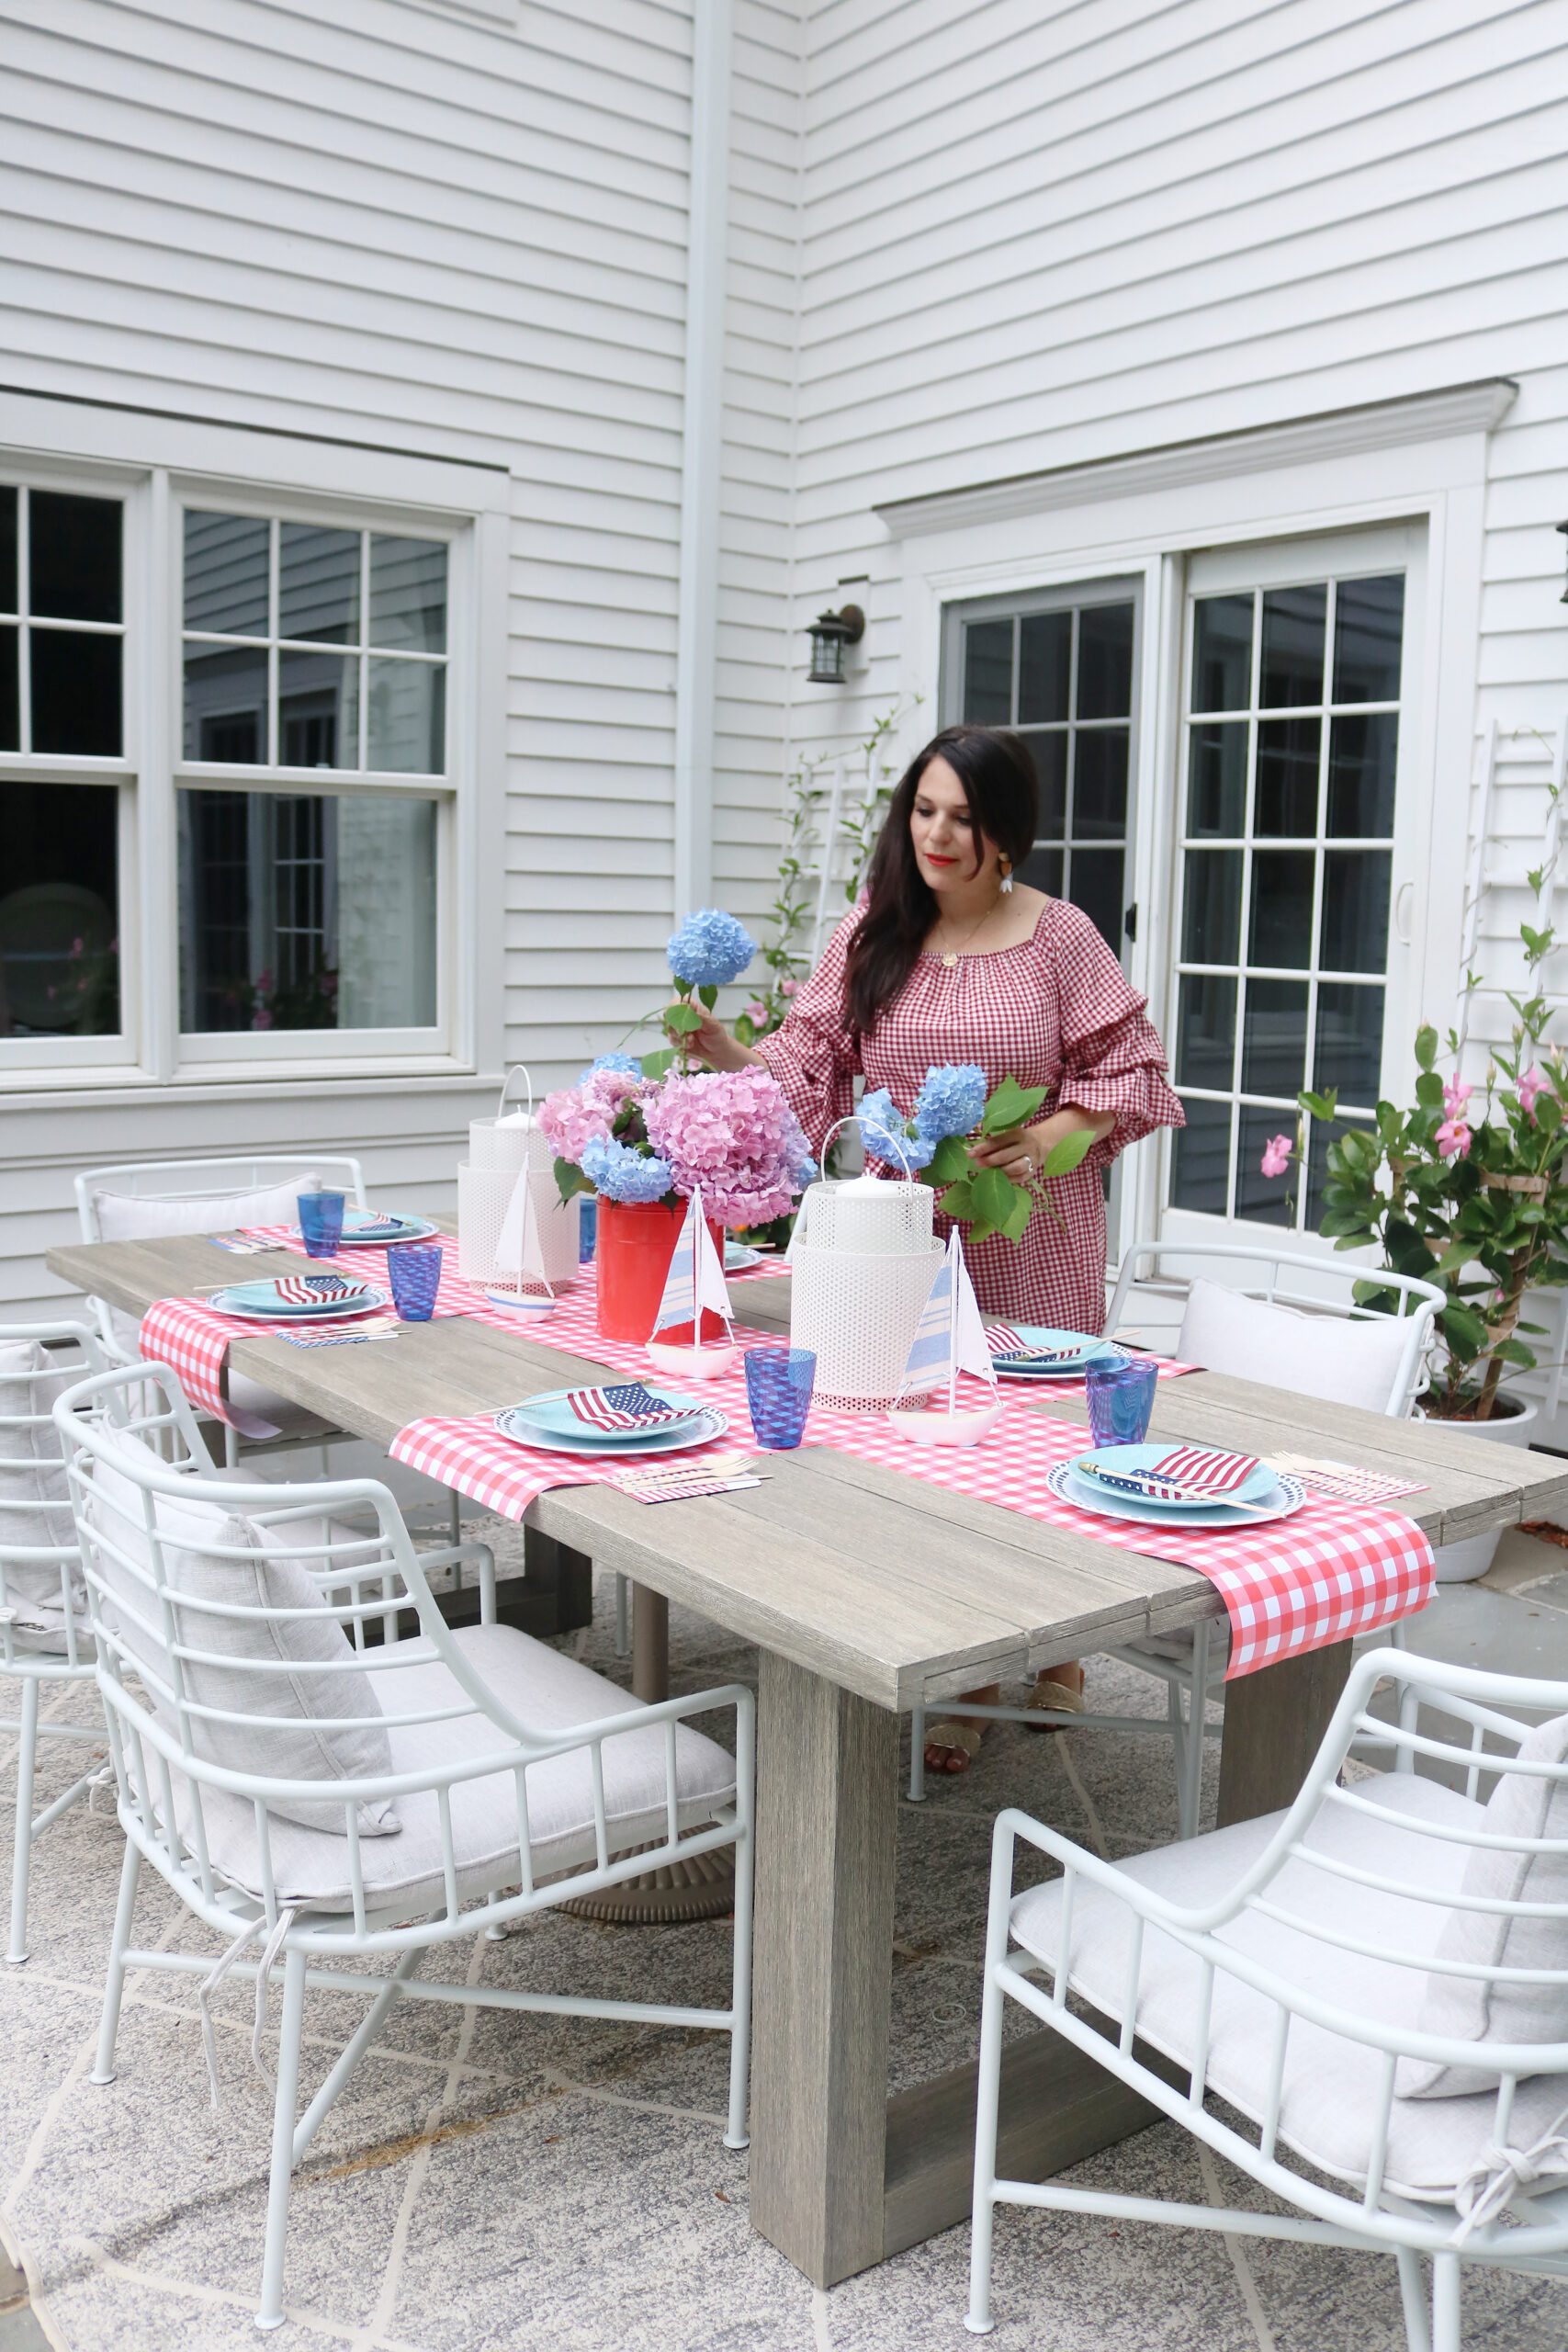 This year host a 4th of July backyard party and sharing simple budget-friendly decorating tips, 4th of july flower arrangements || Darling Darleen Top CT Lifestyle Blogger #4thofjuly